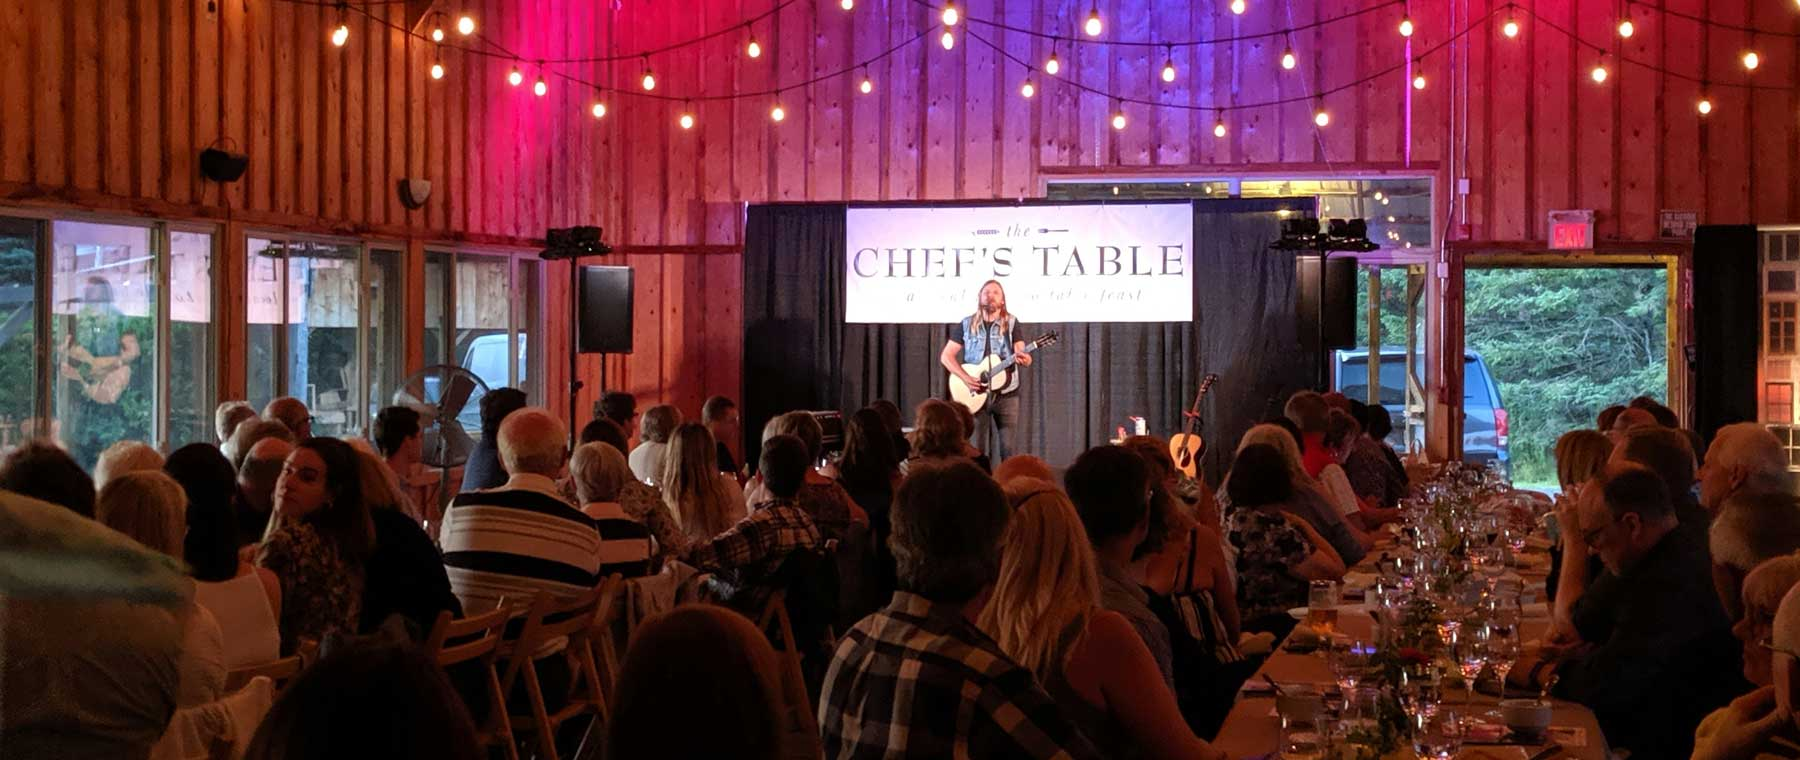 The Chef's Table pairs local chefs with intimate concerts